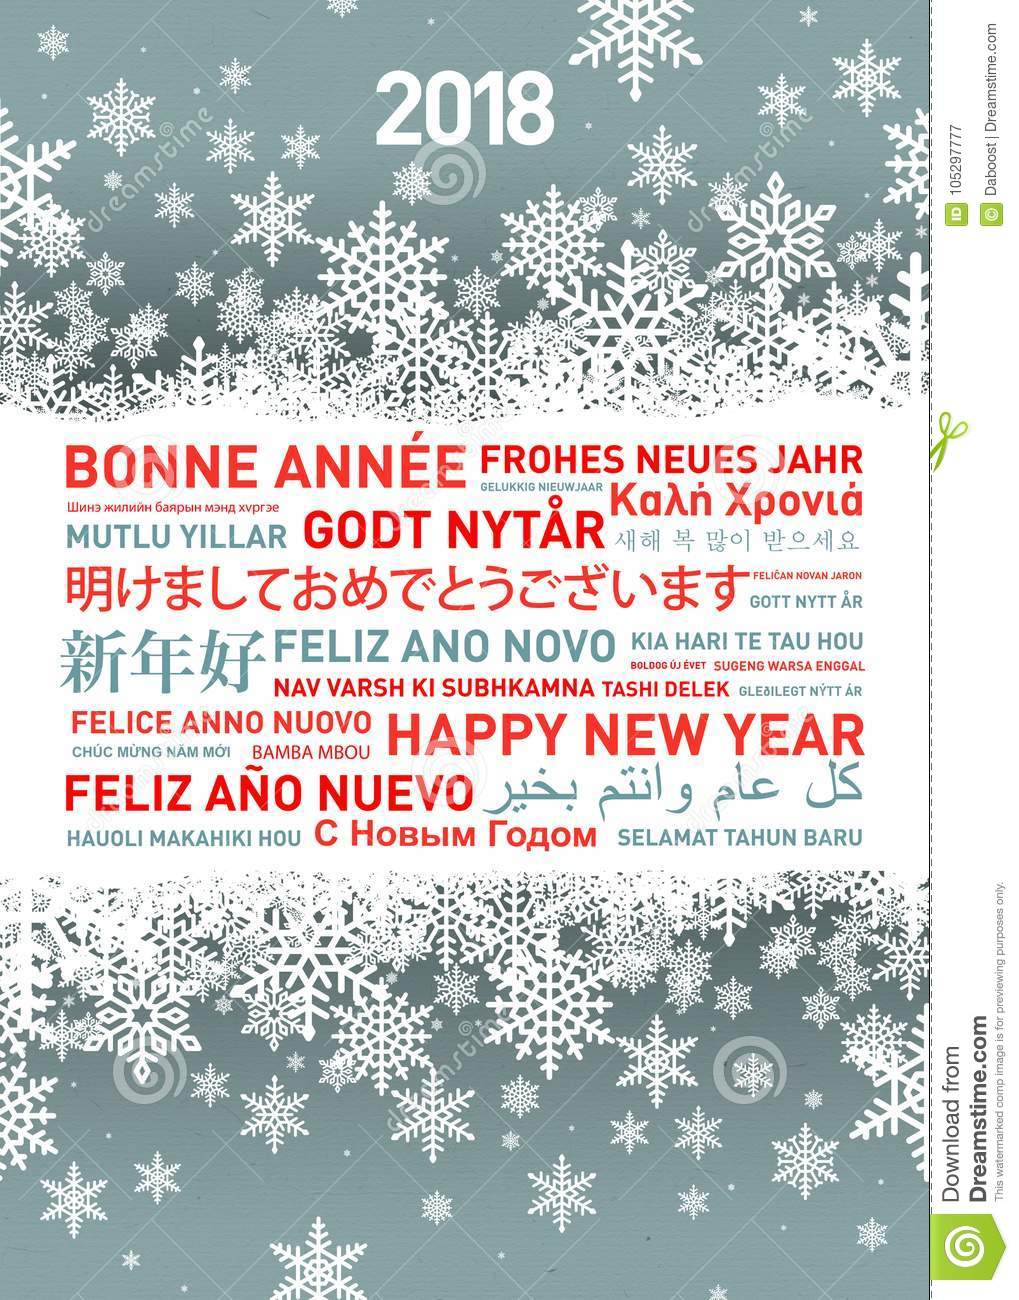 Happy new year greetings card from all the world stock illustration happy new year greetings card in different world languages m4hsunfo